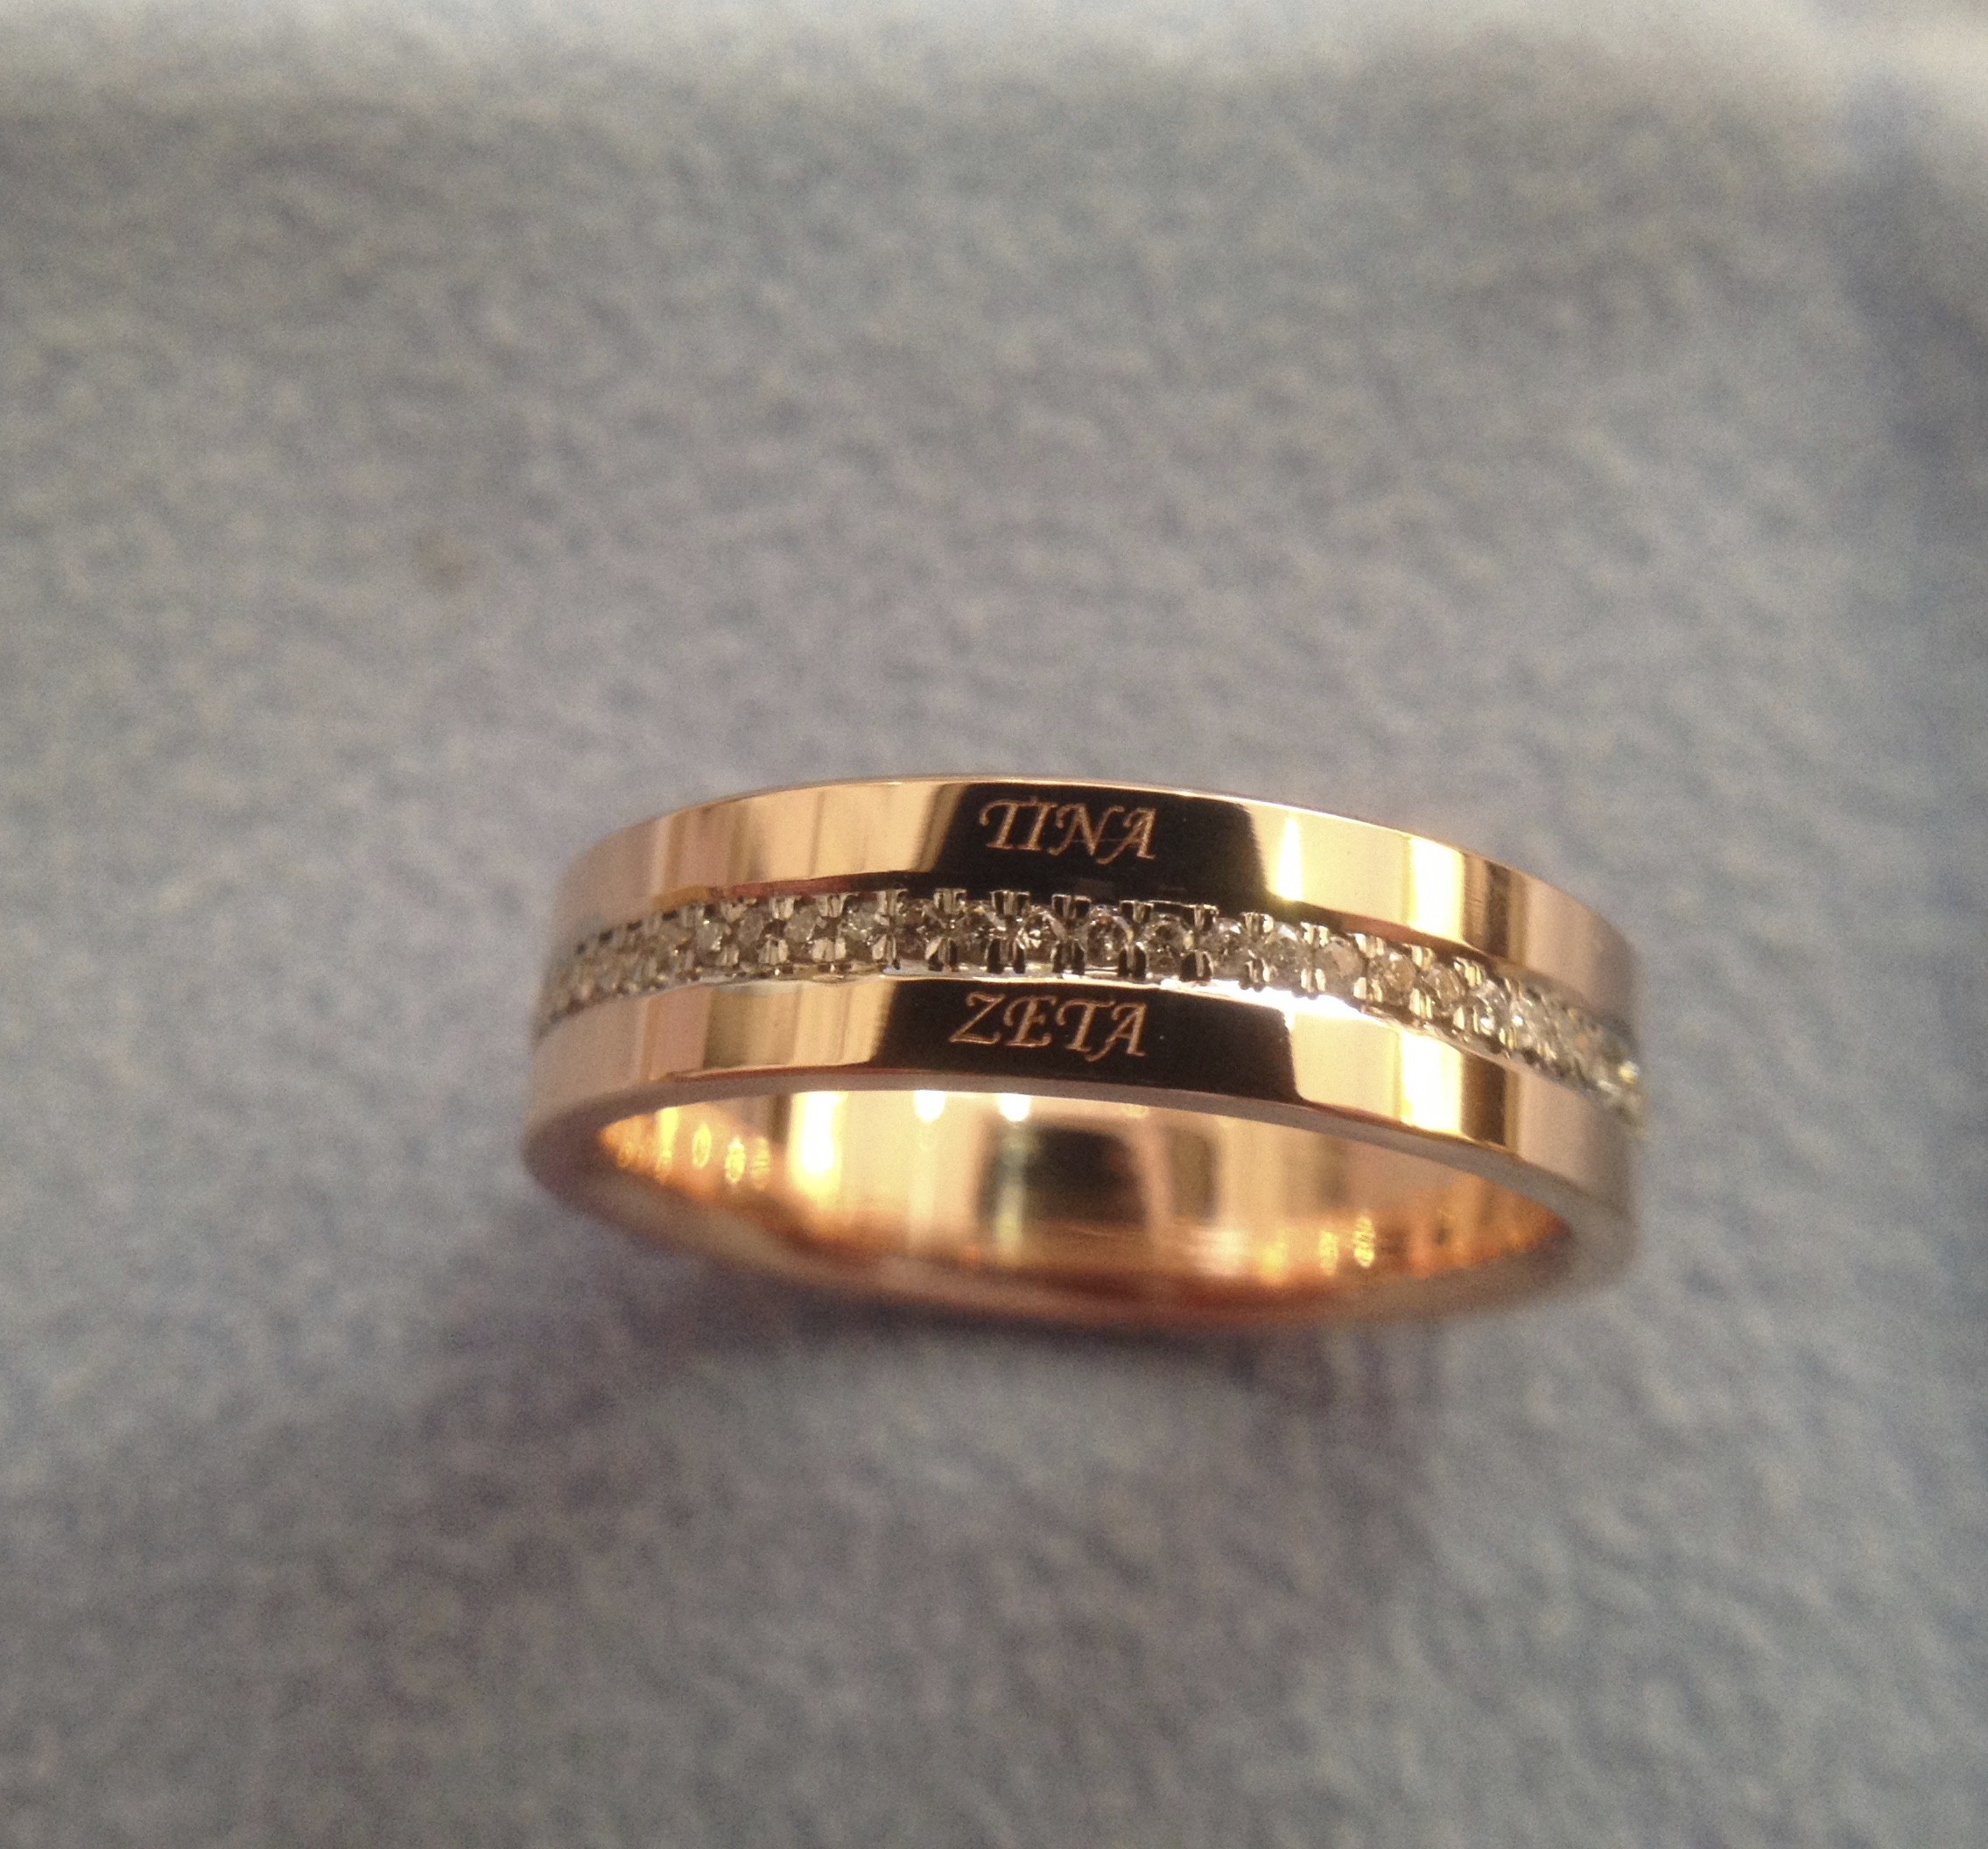 Custom ring with diamonds and names